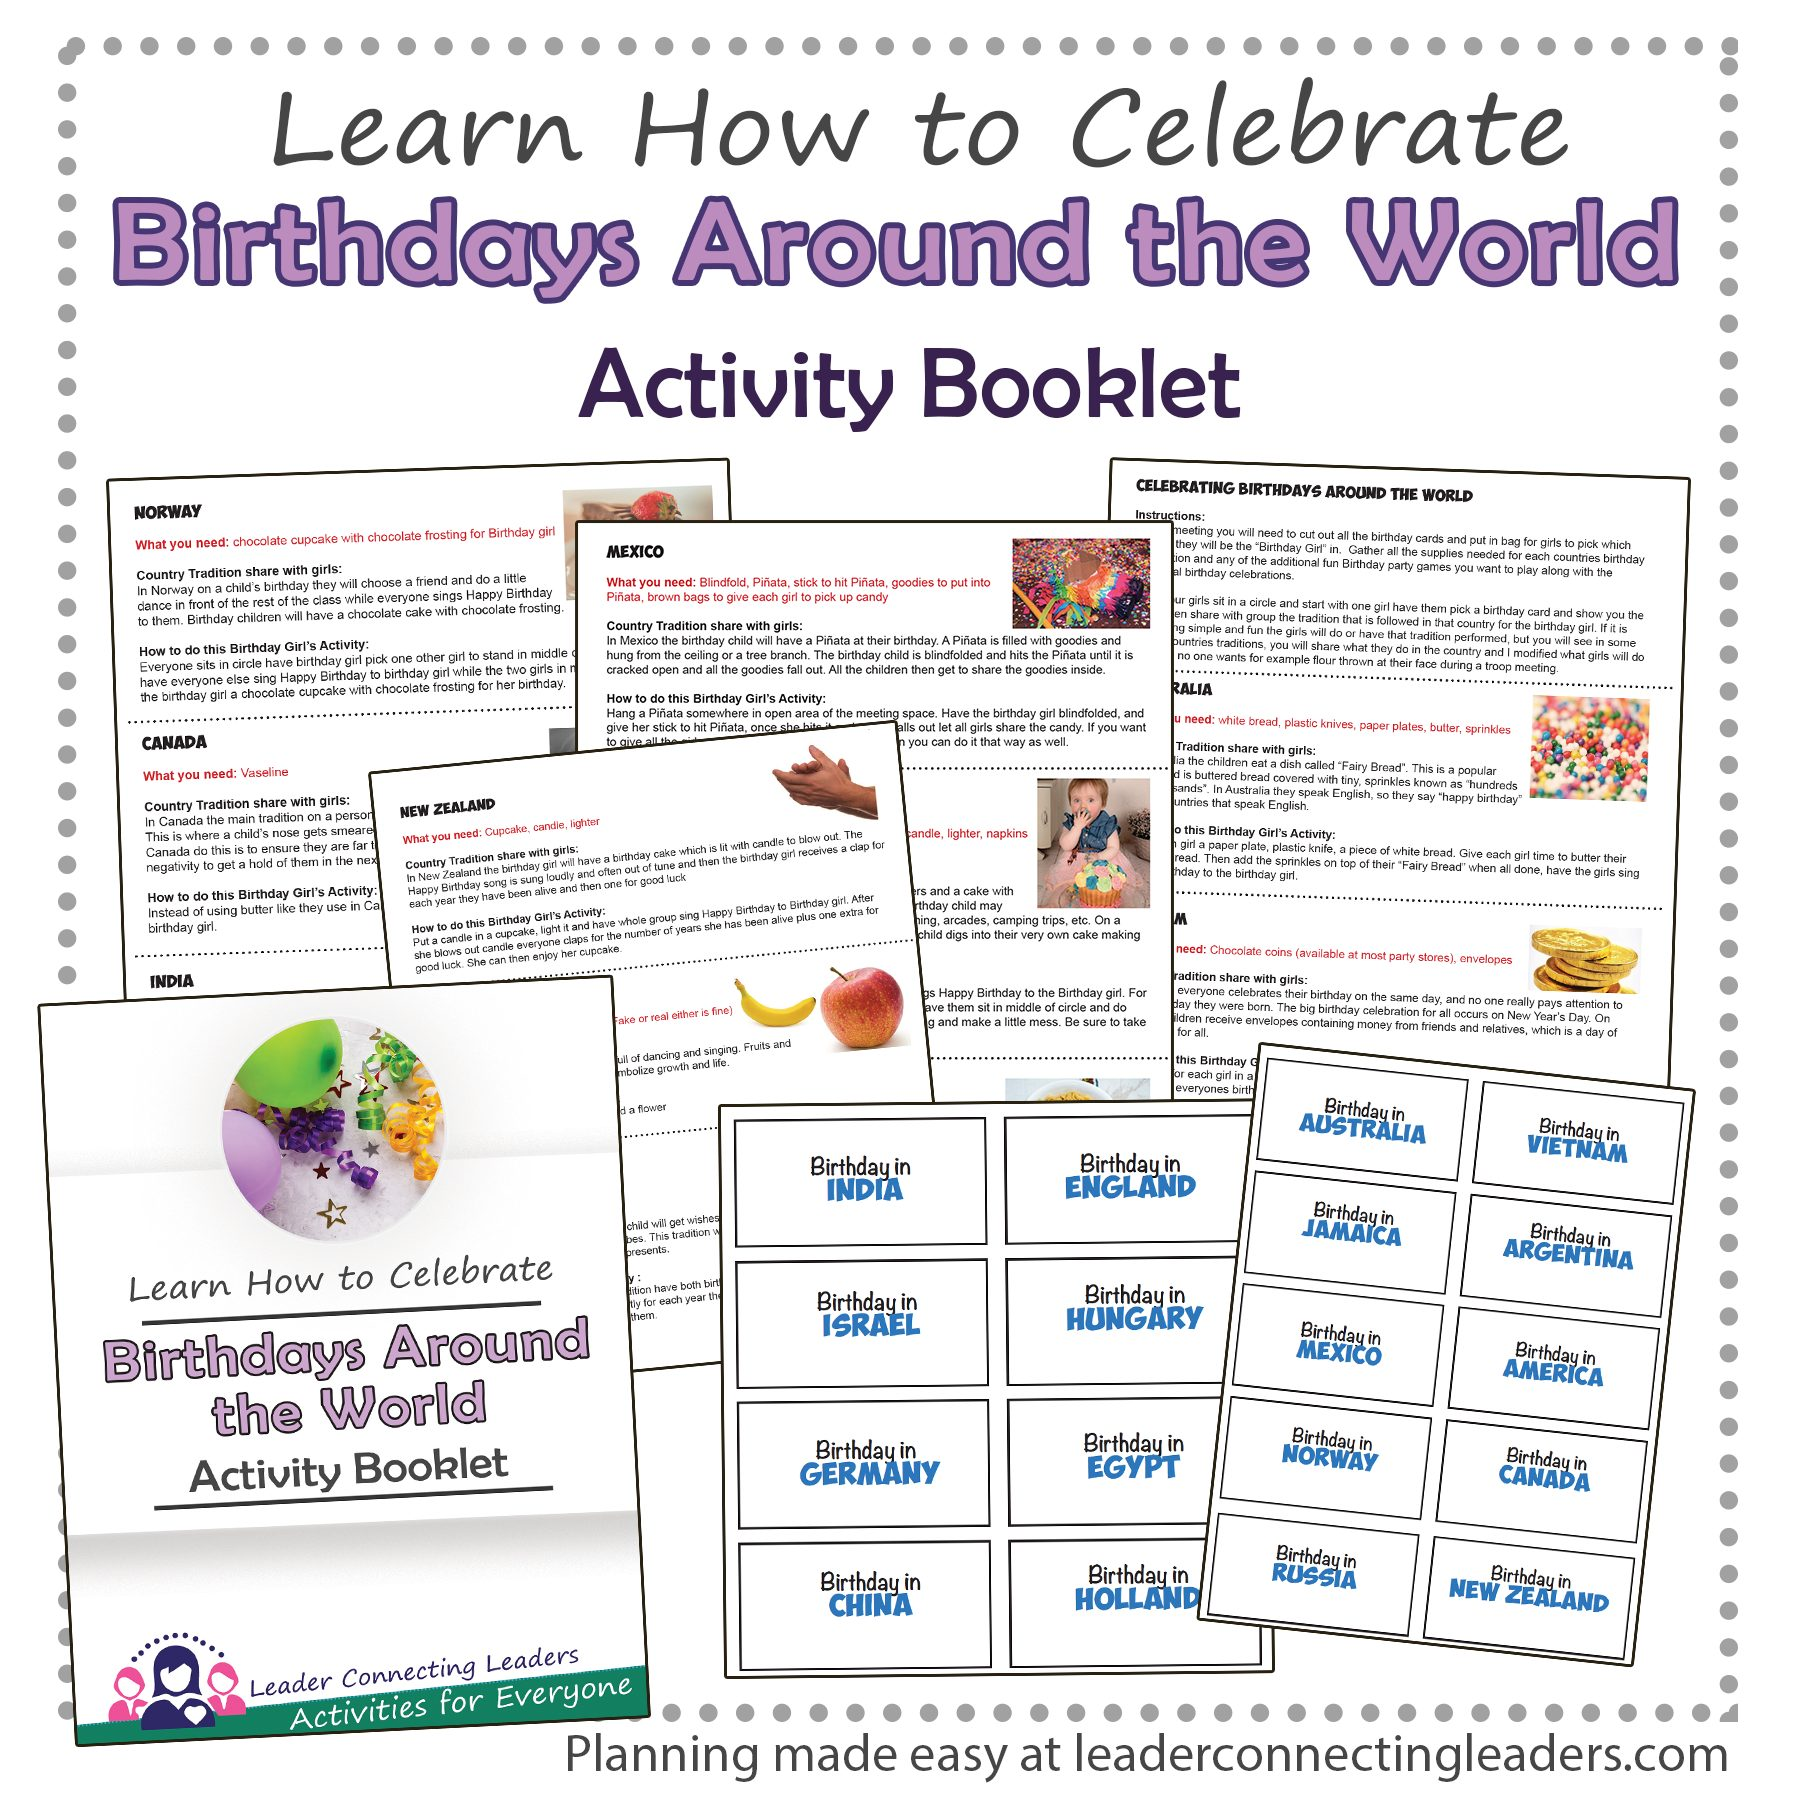 Birthdays Around the World Activity Booklet